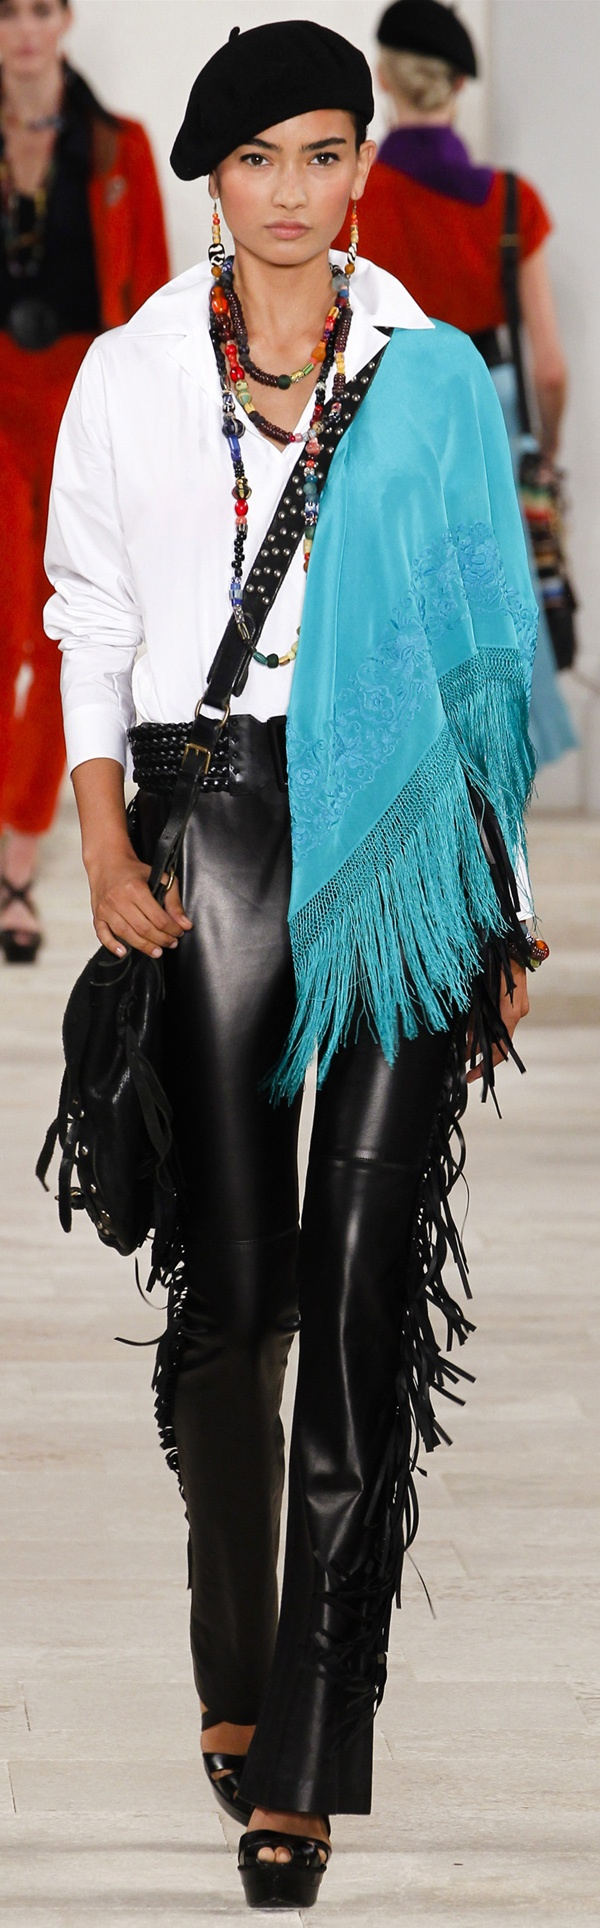 ✜ Ralph Lauren SS 2013 ✜ http://www.vogue.com/collections/spring-2013-rtw/ralph-lauren/review/# MORE on Runway & on Dresses